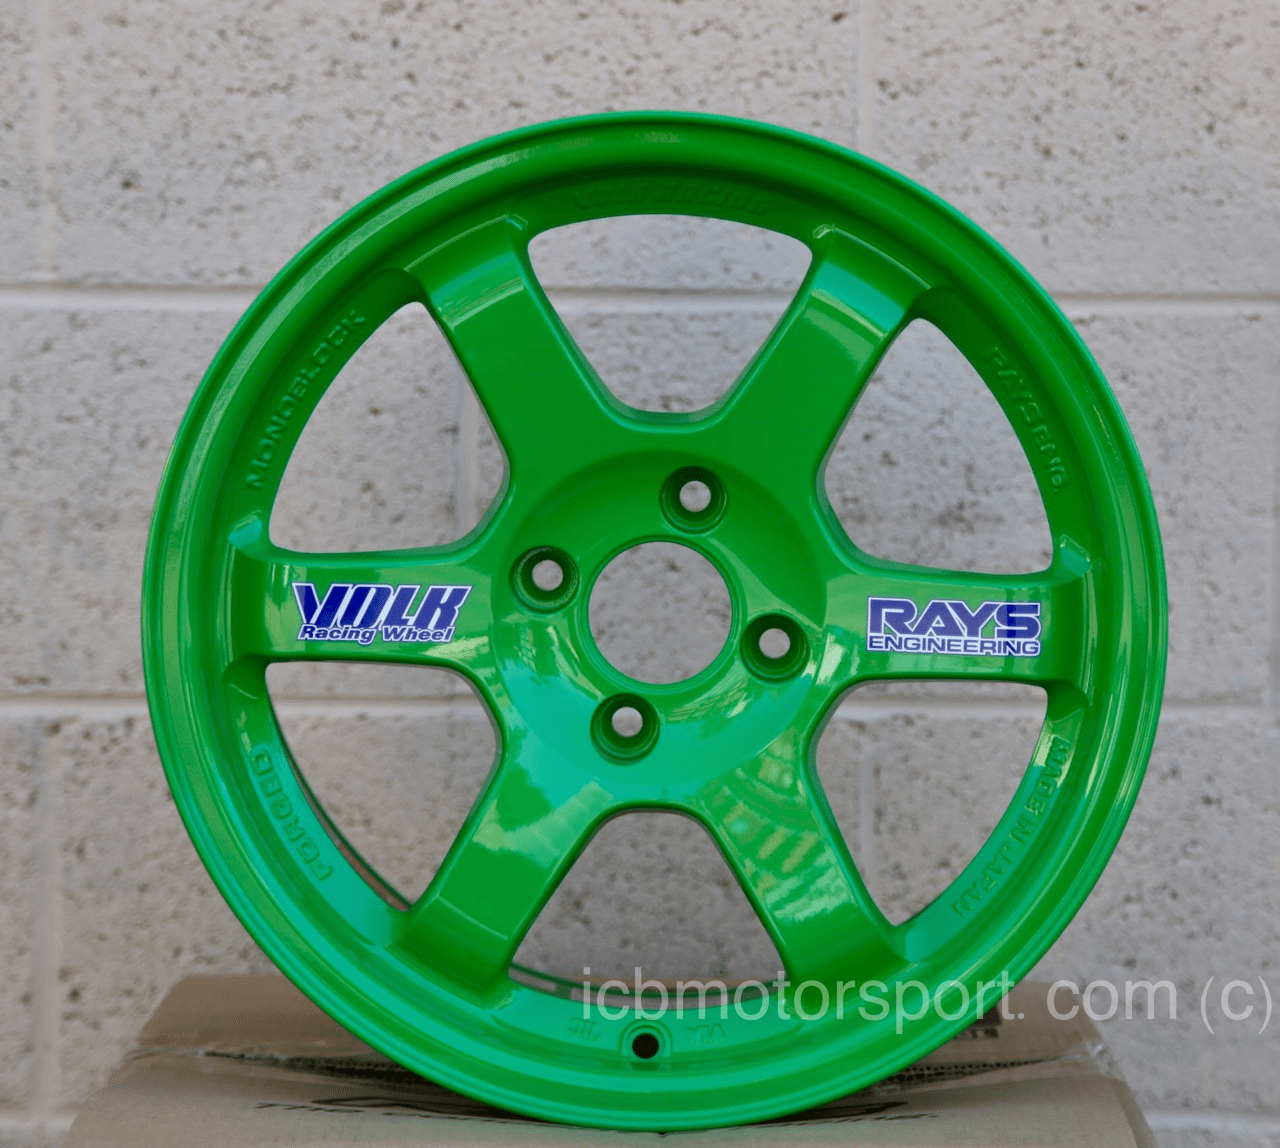 Rays Volk Racing TE37 Wheels 15X8 5X114.3 +35 Offset Takata Green